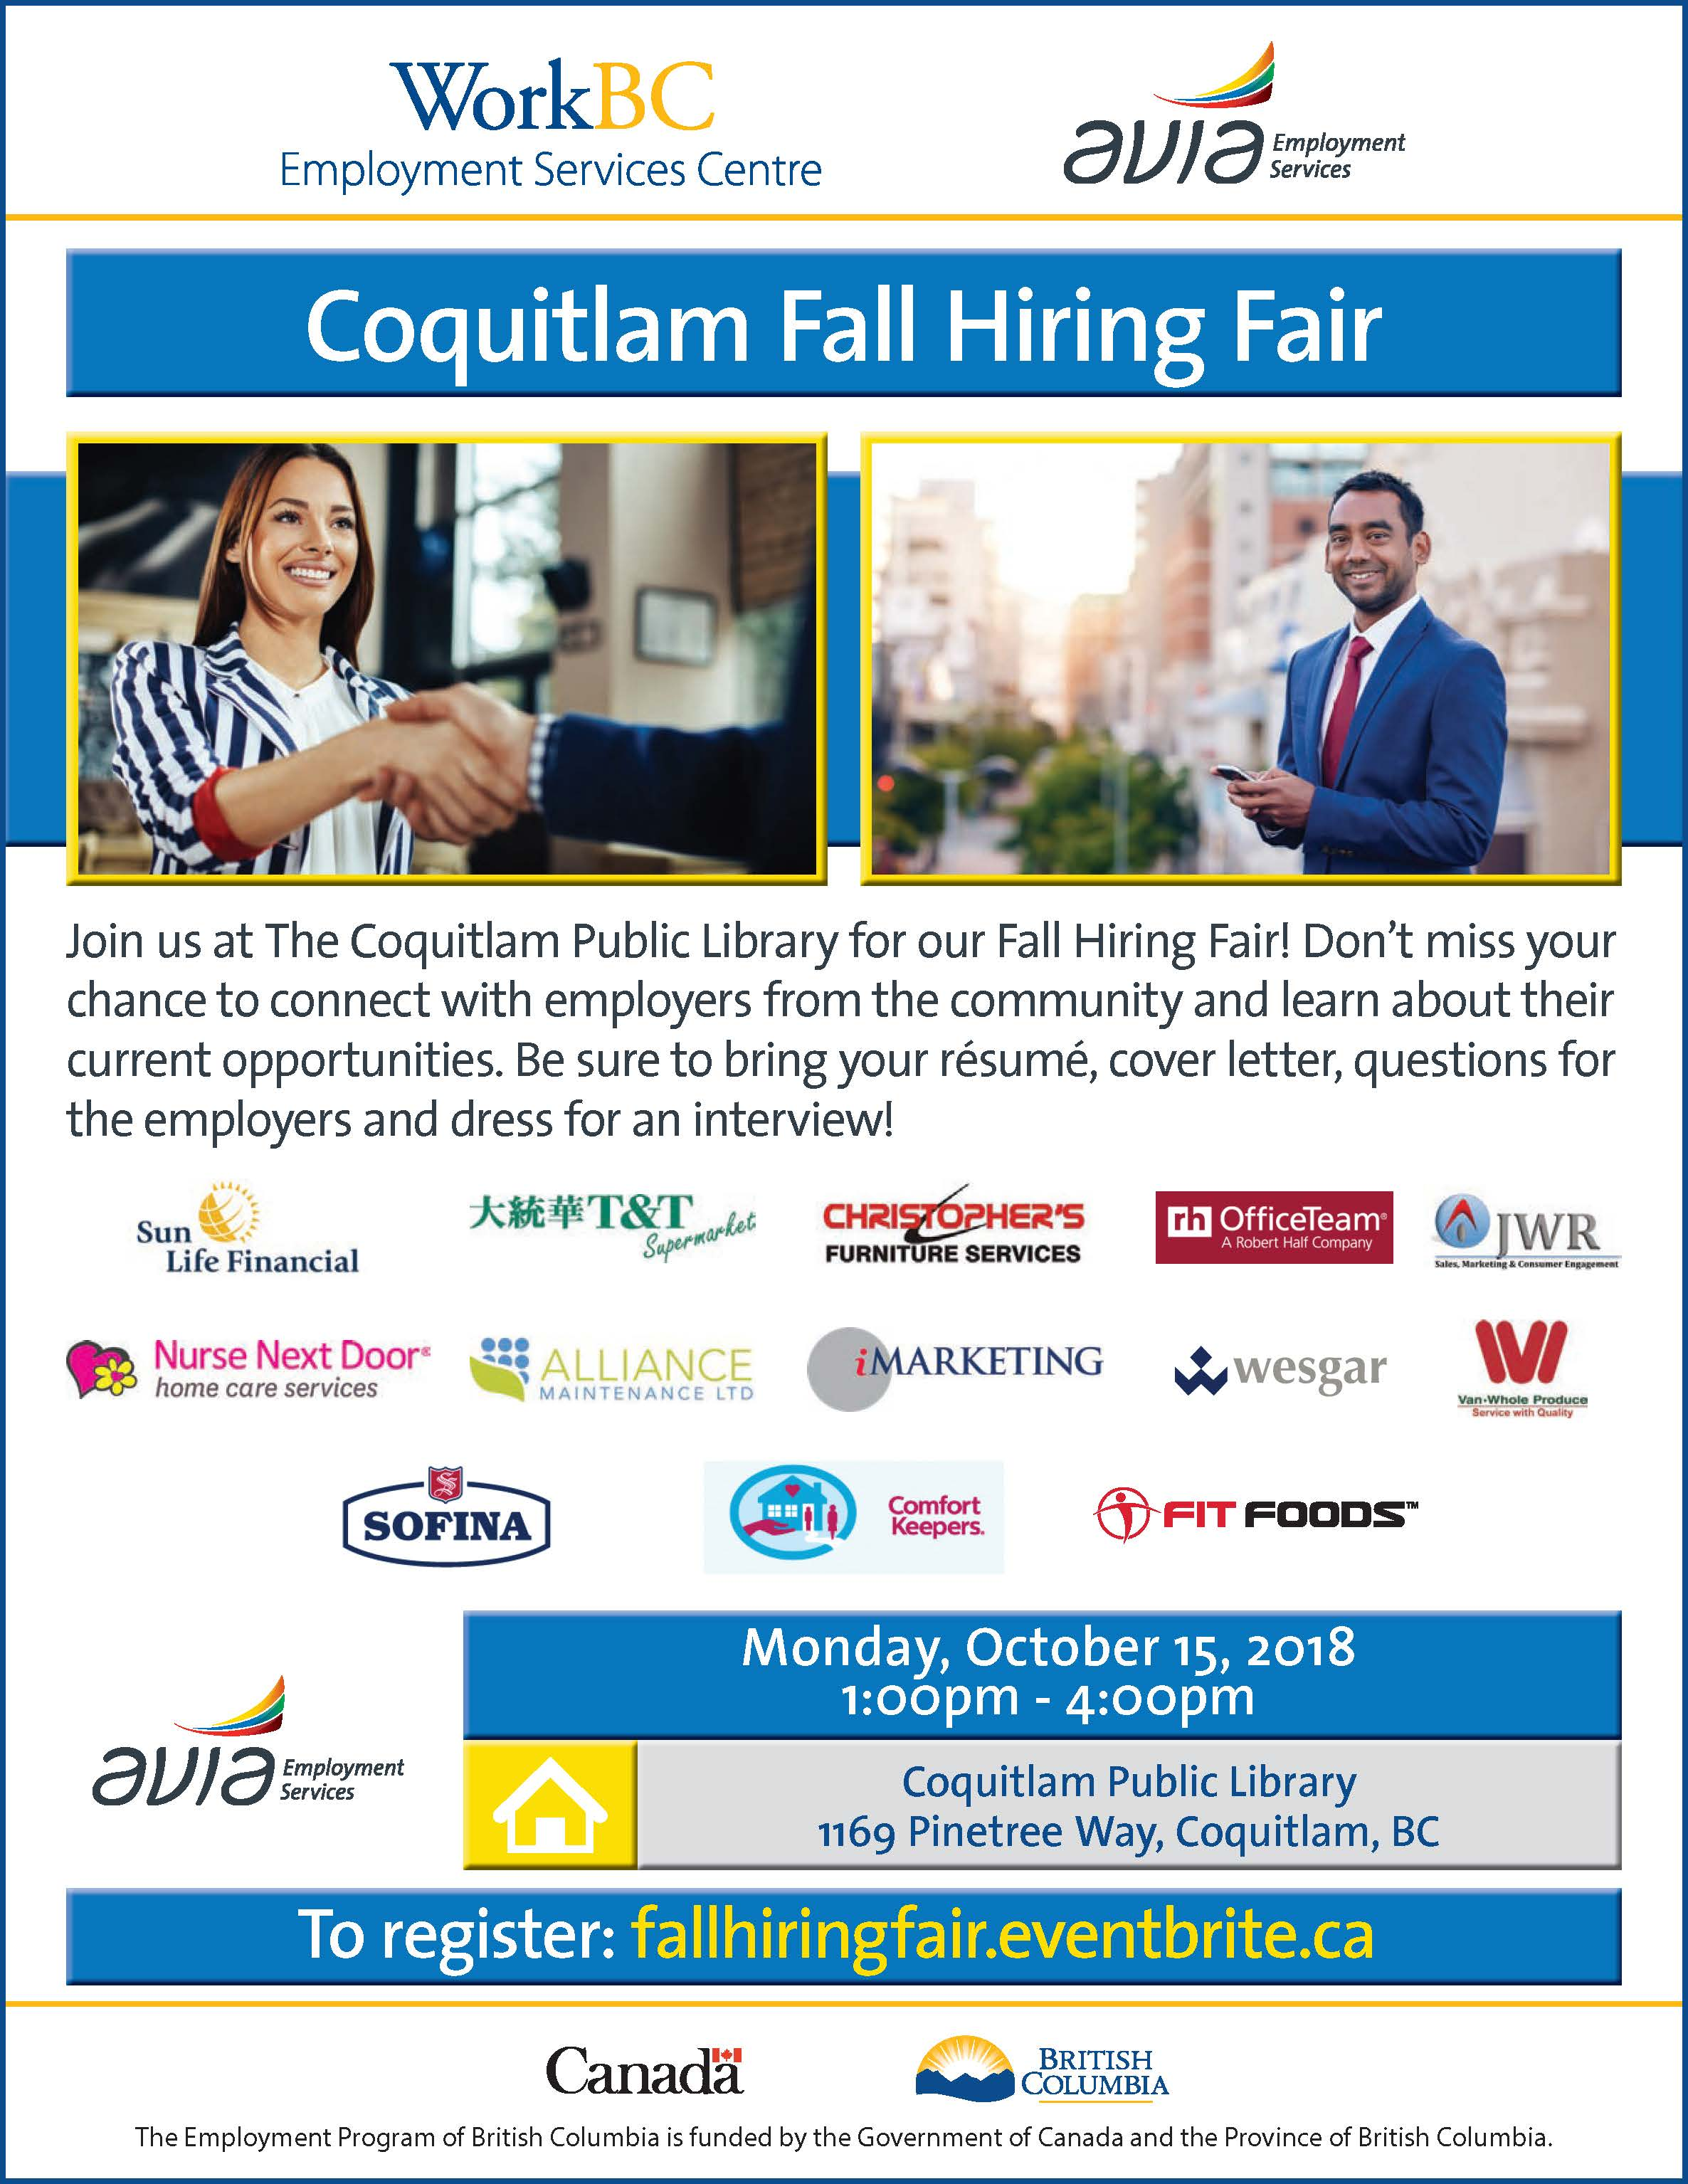 Coquitlam Fall Hiring Fair